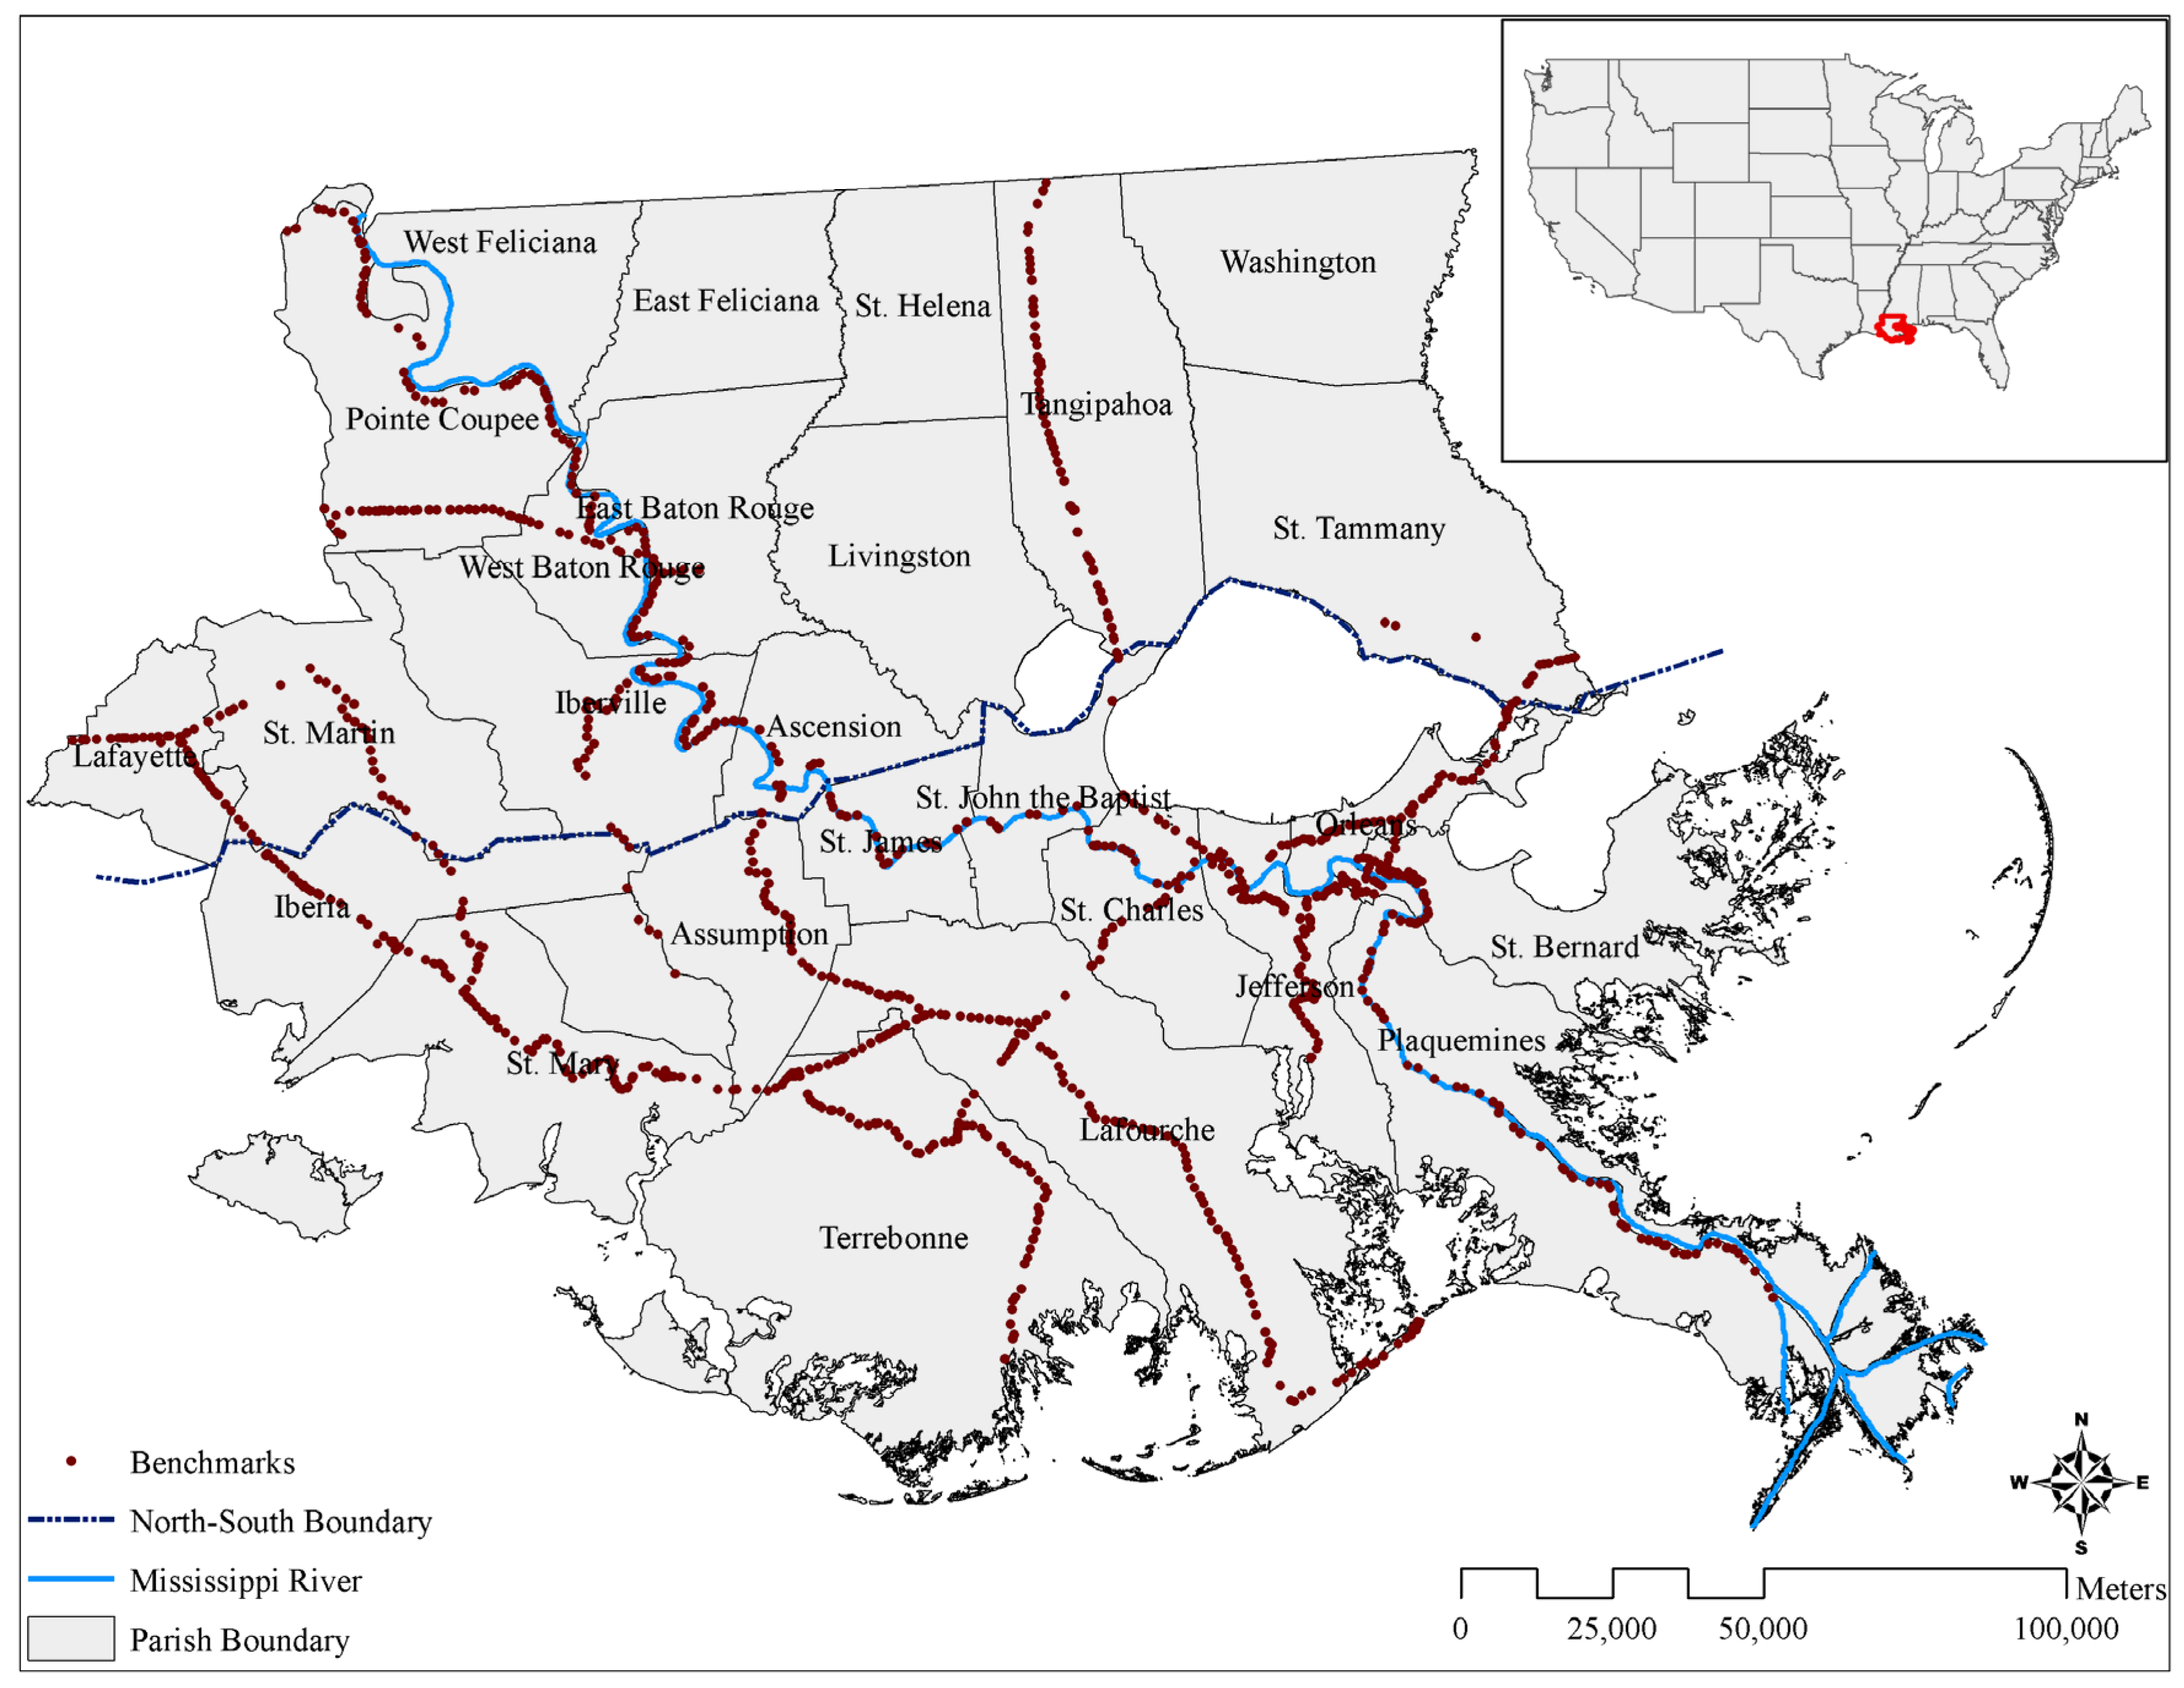 Water   Free Full-Text   Evaluating Land Subsidence Rates and Their on lake ontario map, texas map, mississippi highway map, missouri map, mexico map, us landforms map, louisiana map, mississippi delta map, rio grande map, great lakes map, pennsylvania map, united states map, california map, mississippi snow, florida map, mississippi seal, colorado map, minnesota map, great plains on map, canada map,